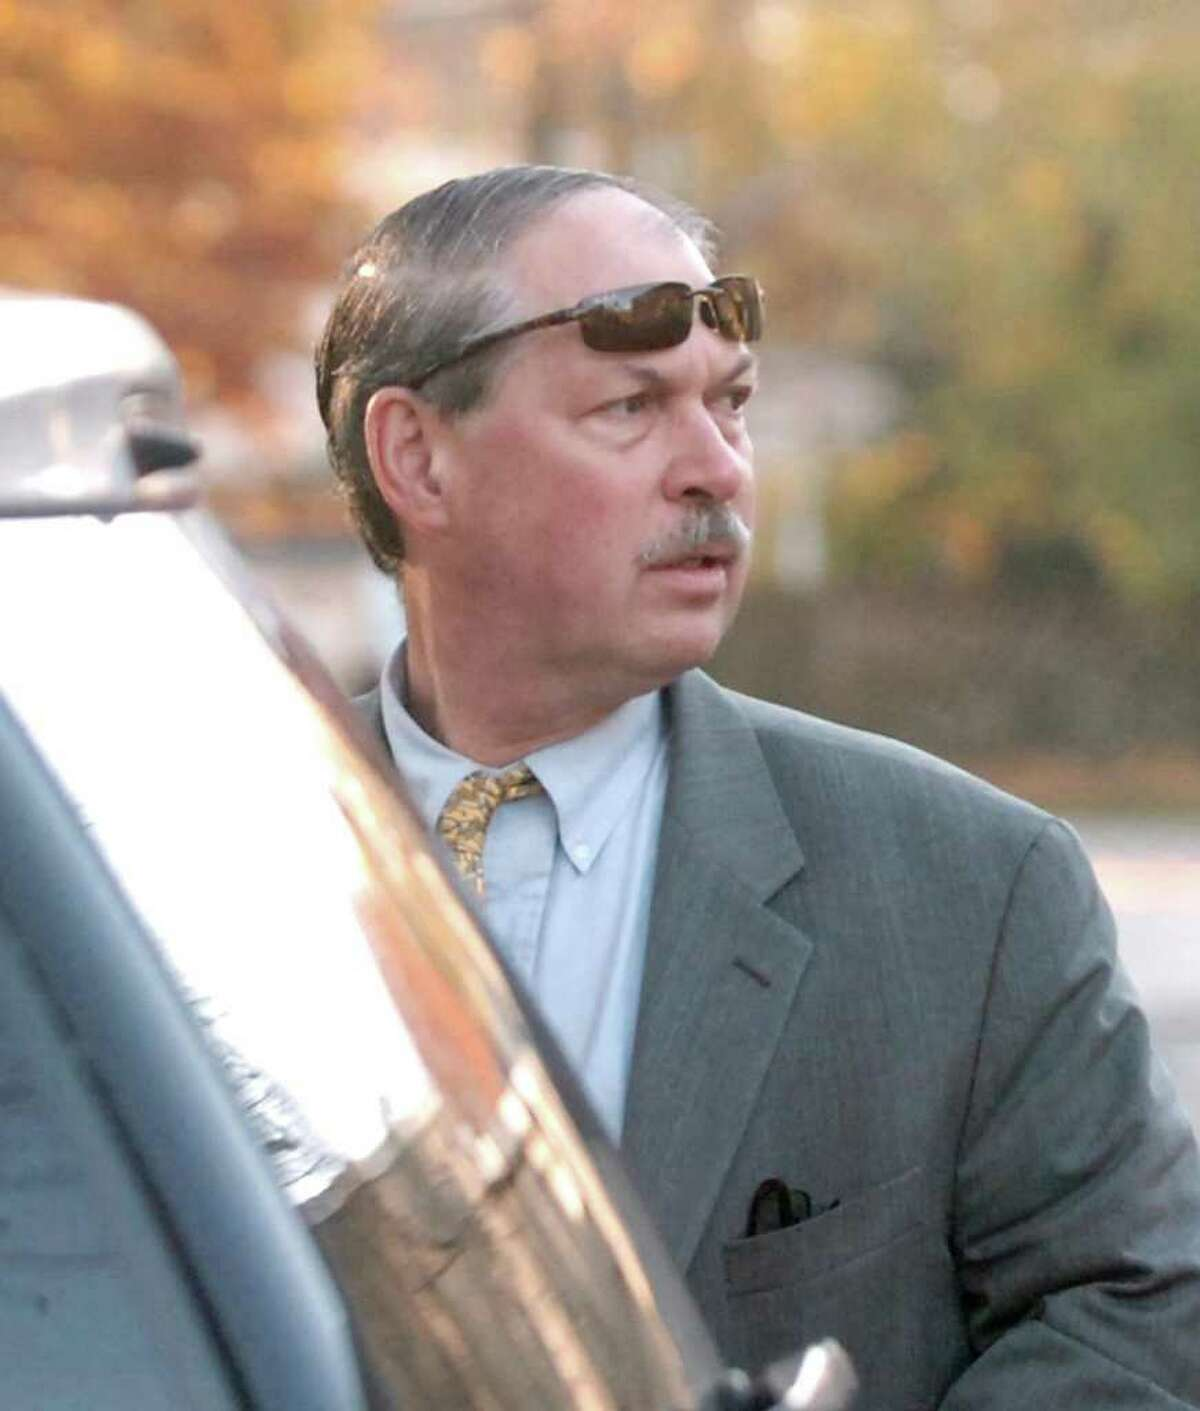 Obstetrician and gynecologist Dr. Ben Ramaley outside his practice at 2600 Post Road in Southport, in this Nov. 9, 2009, file photo.